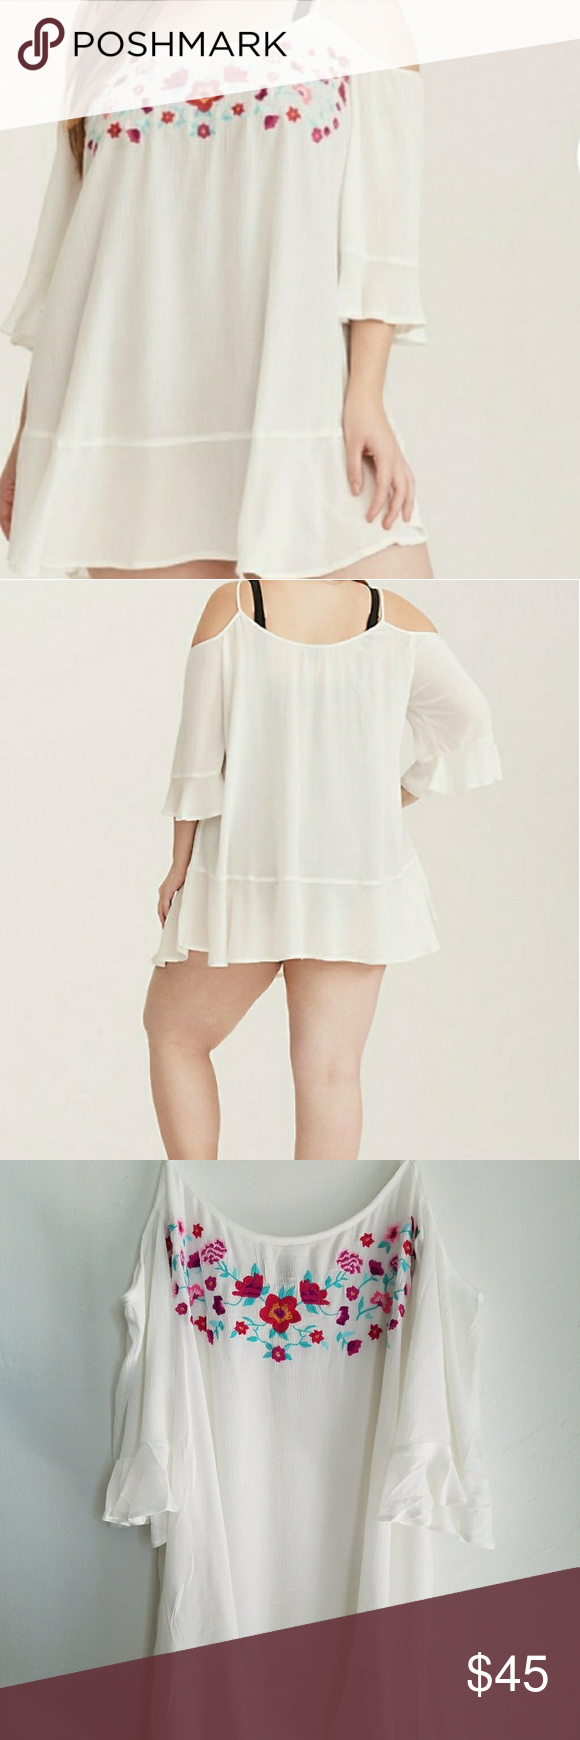 6bcb8293e0 NWT Torrid Ivory Embroidered Gauze Swim Cover-up Floral embroidery trims  the neckline of this gorgeous